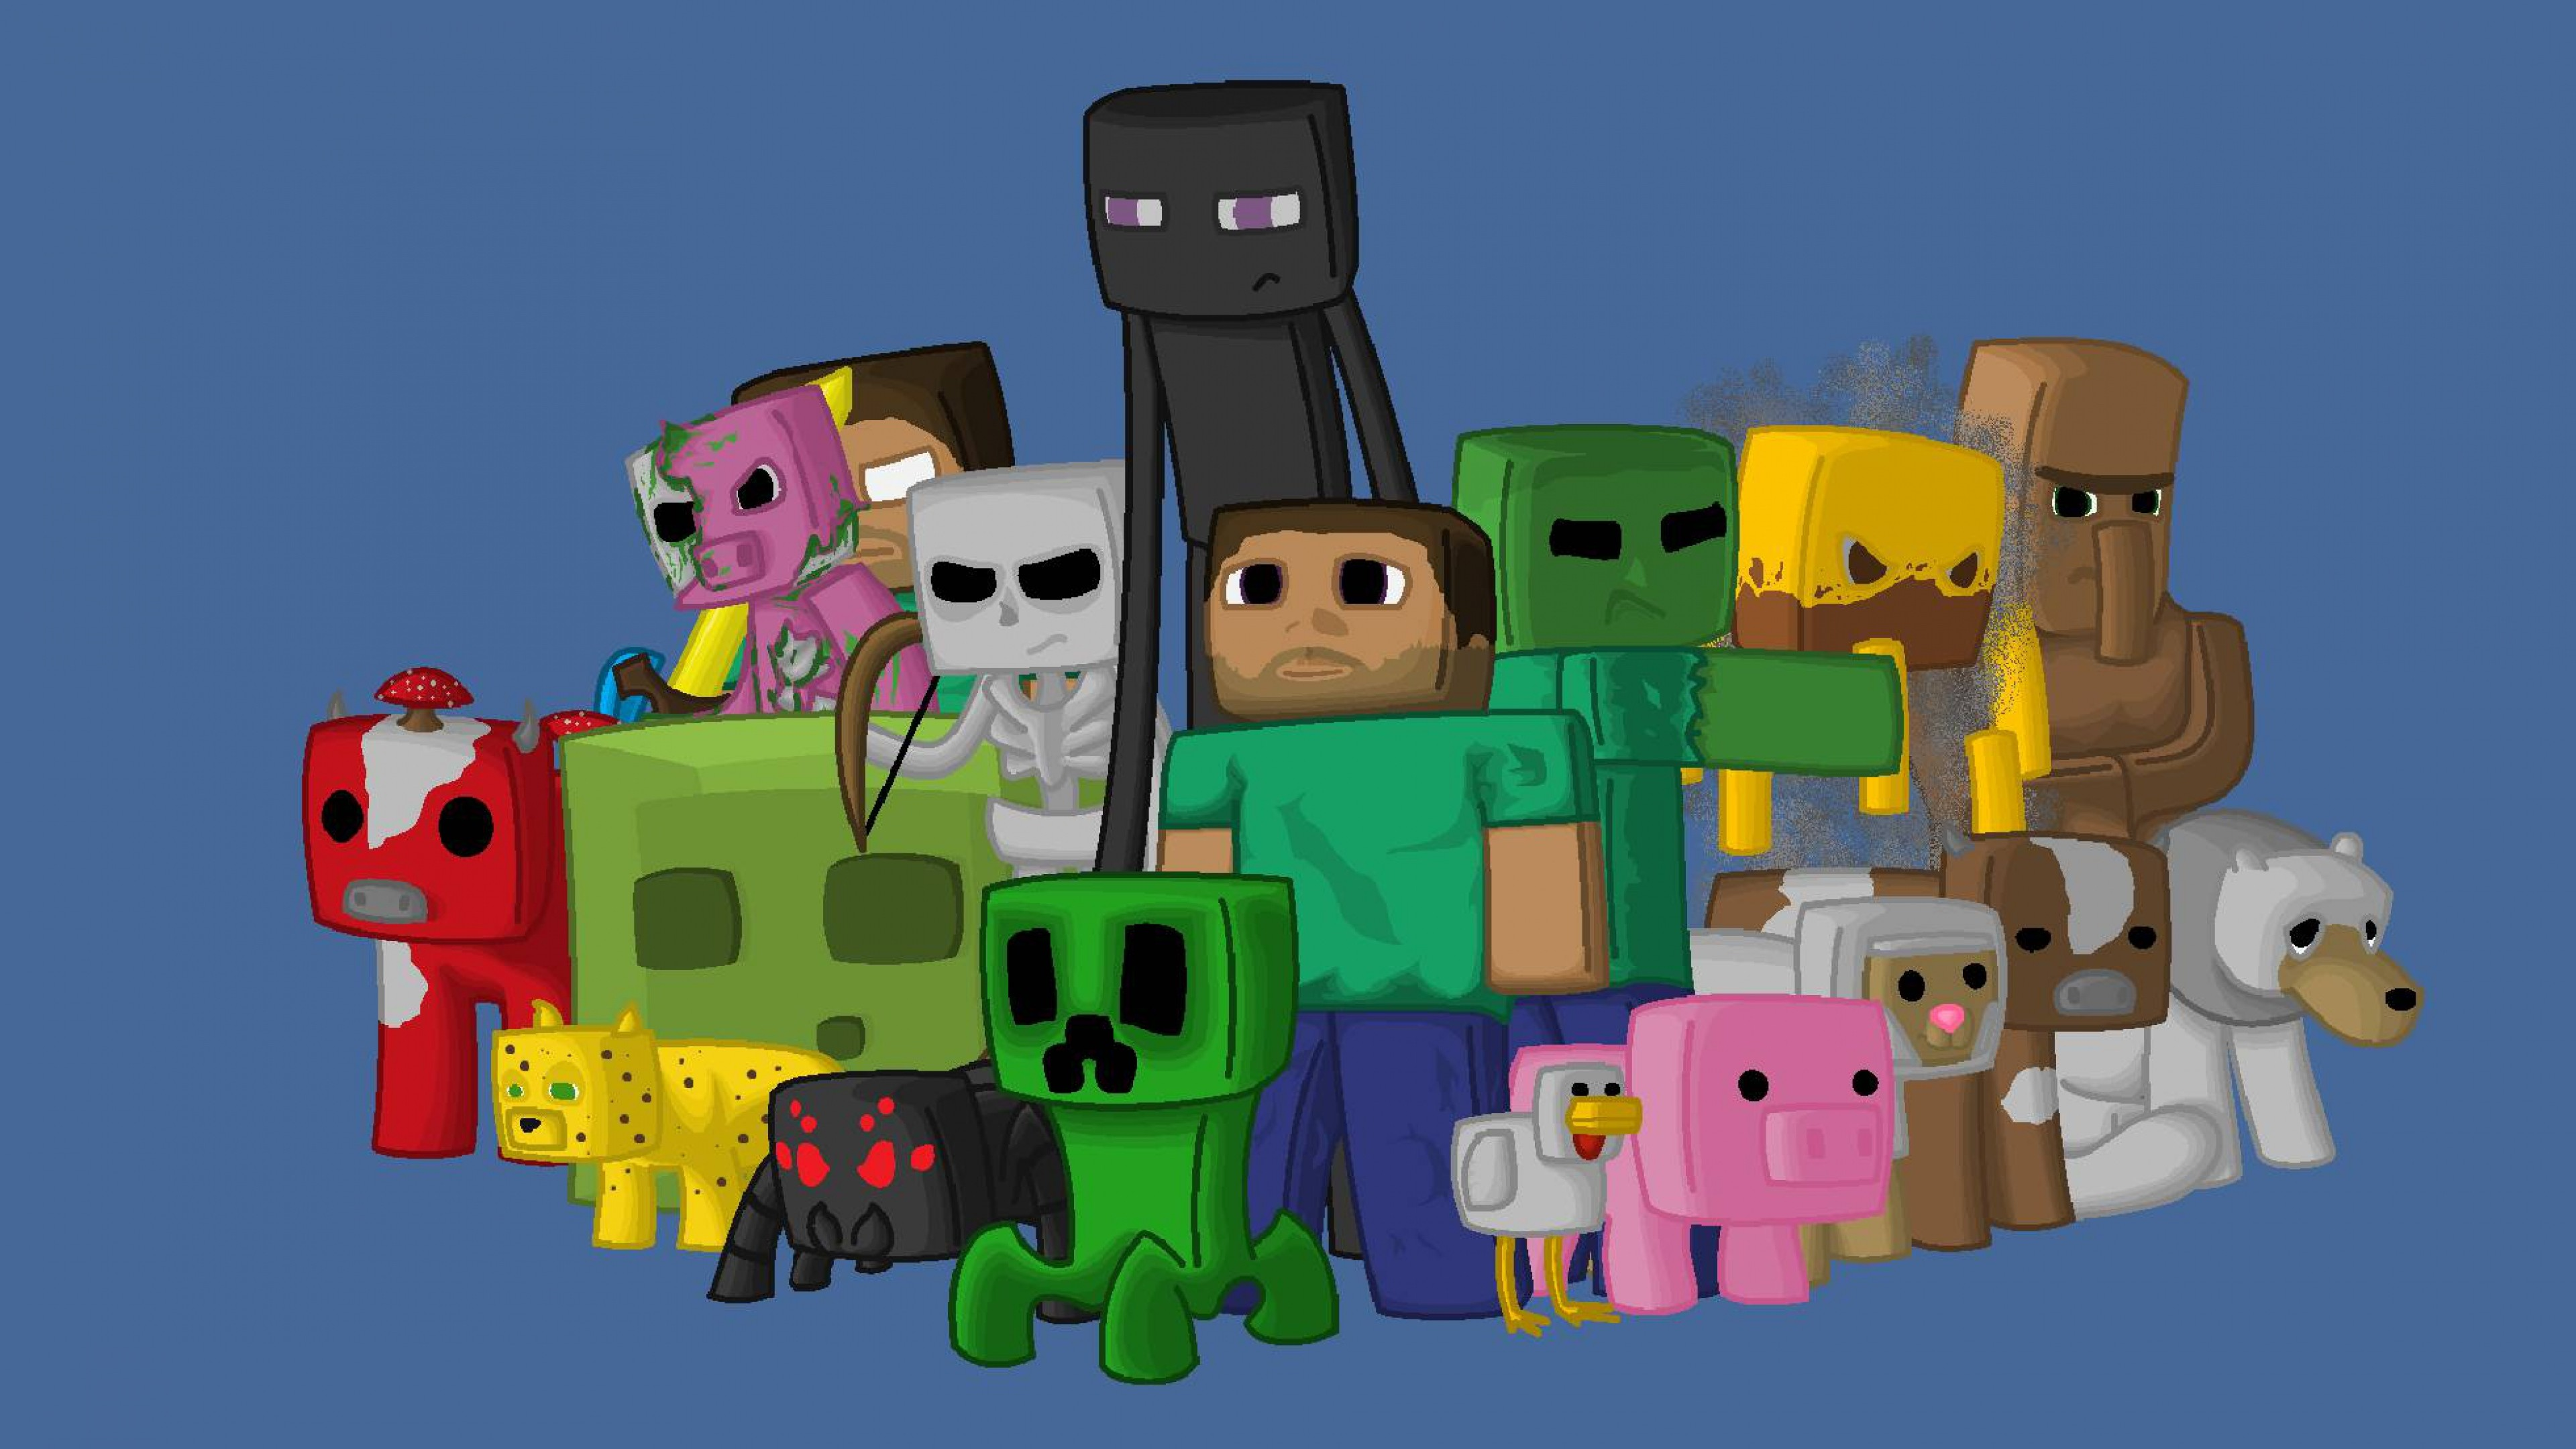 Cute creeper wallpaper 66 images - Creeper iphone background ...